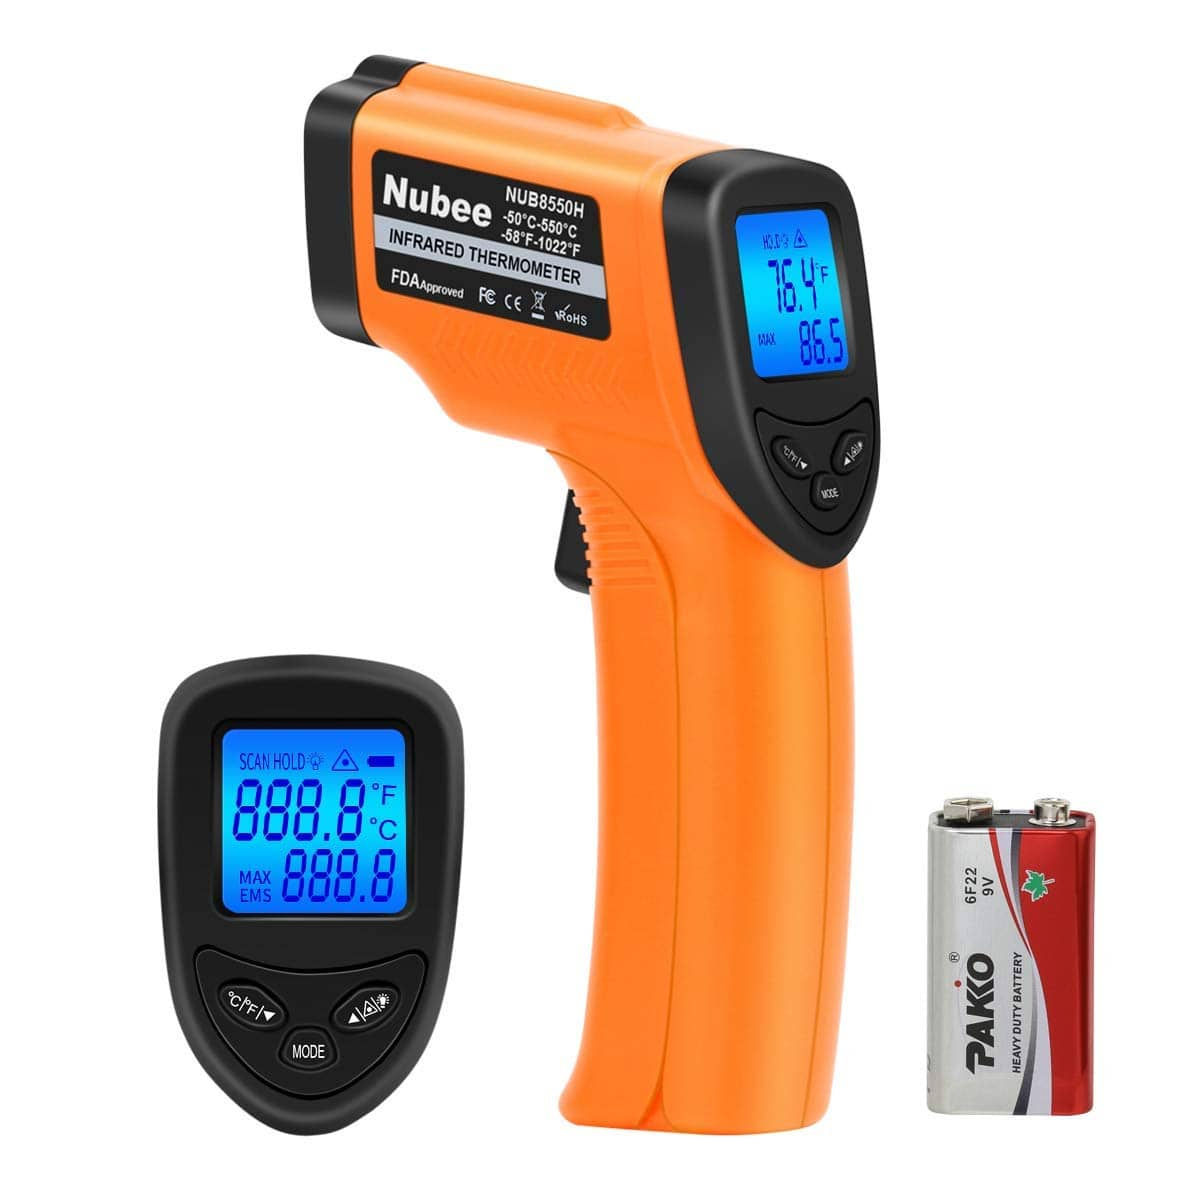 Nubee NUB8550H Digital Infrared Thermometer $11.98 + free shipping